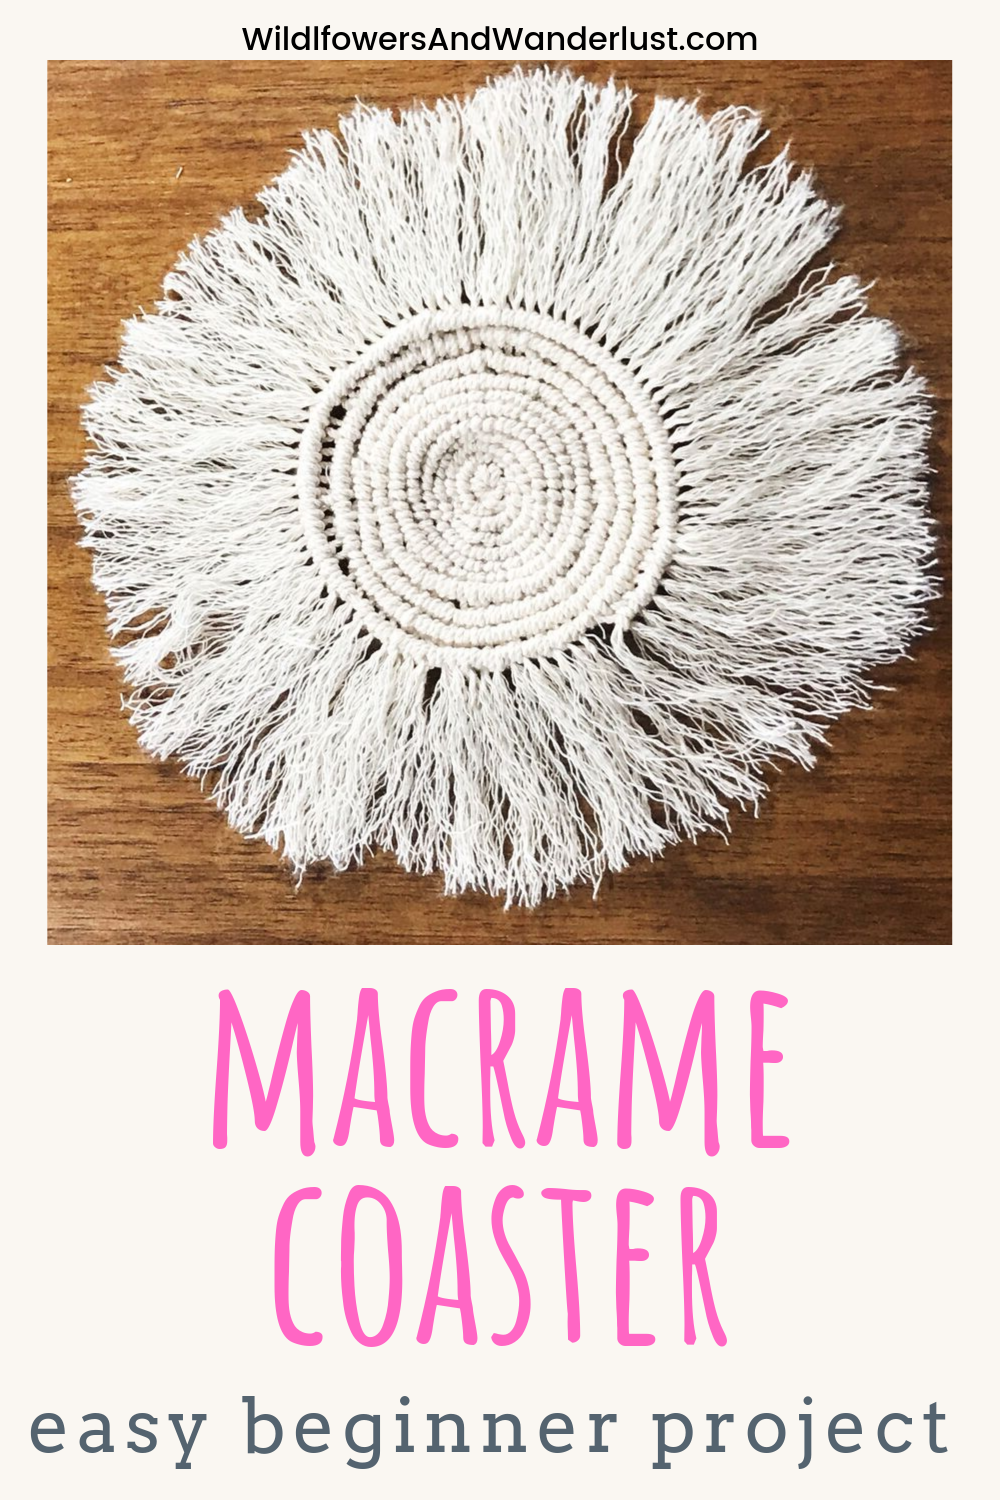 How To Diy A Round Macrame Coaster With Images Macrame